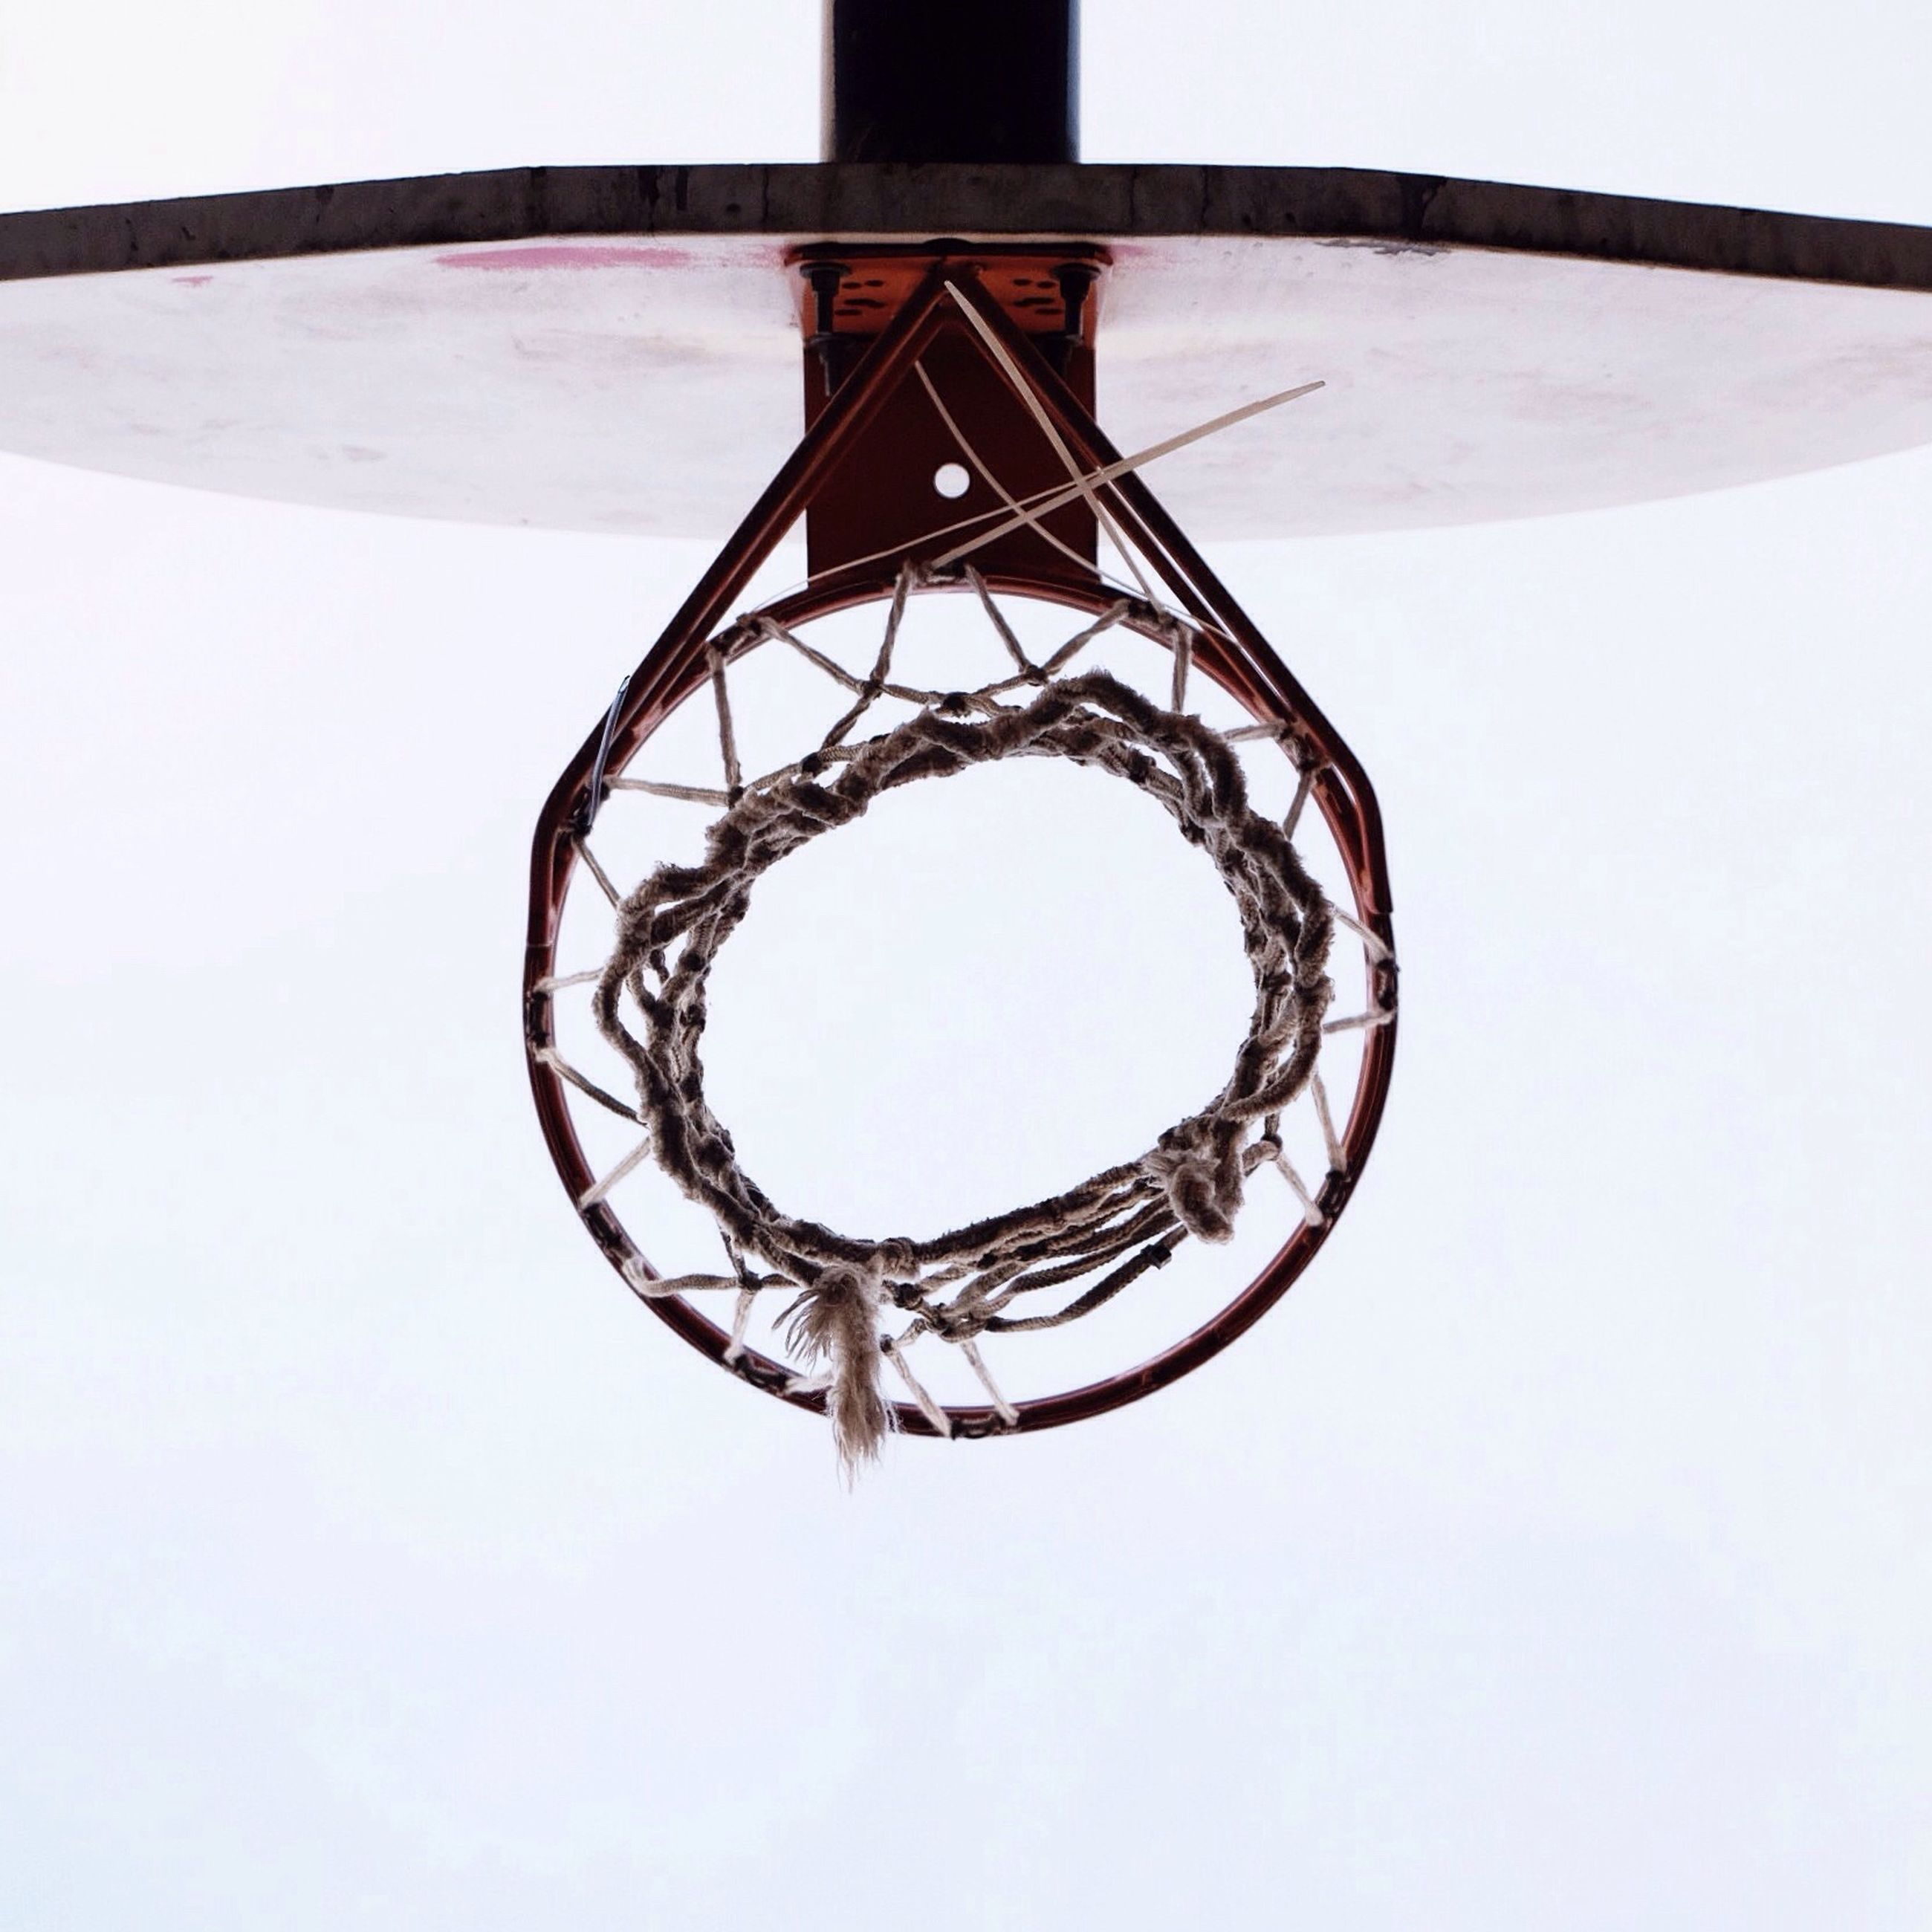 low angle view, built structure, circle, architecture, geometric shape, directly below, metal, design, clear sky, spiral, pattern, shape, day, indoors, spiral staircase, metallic, no people, basketball hoop, sky, close-up